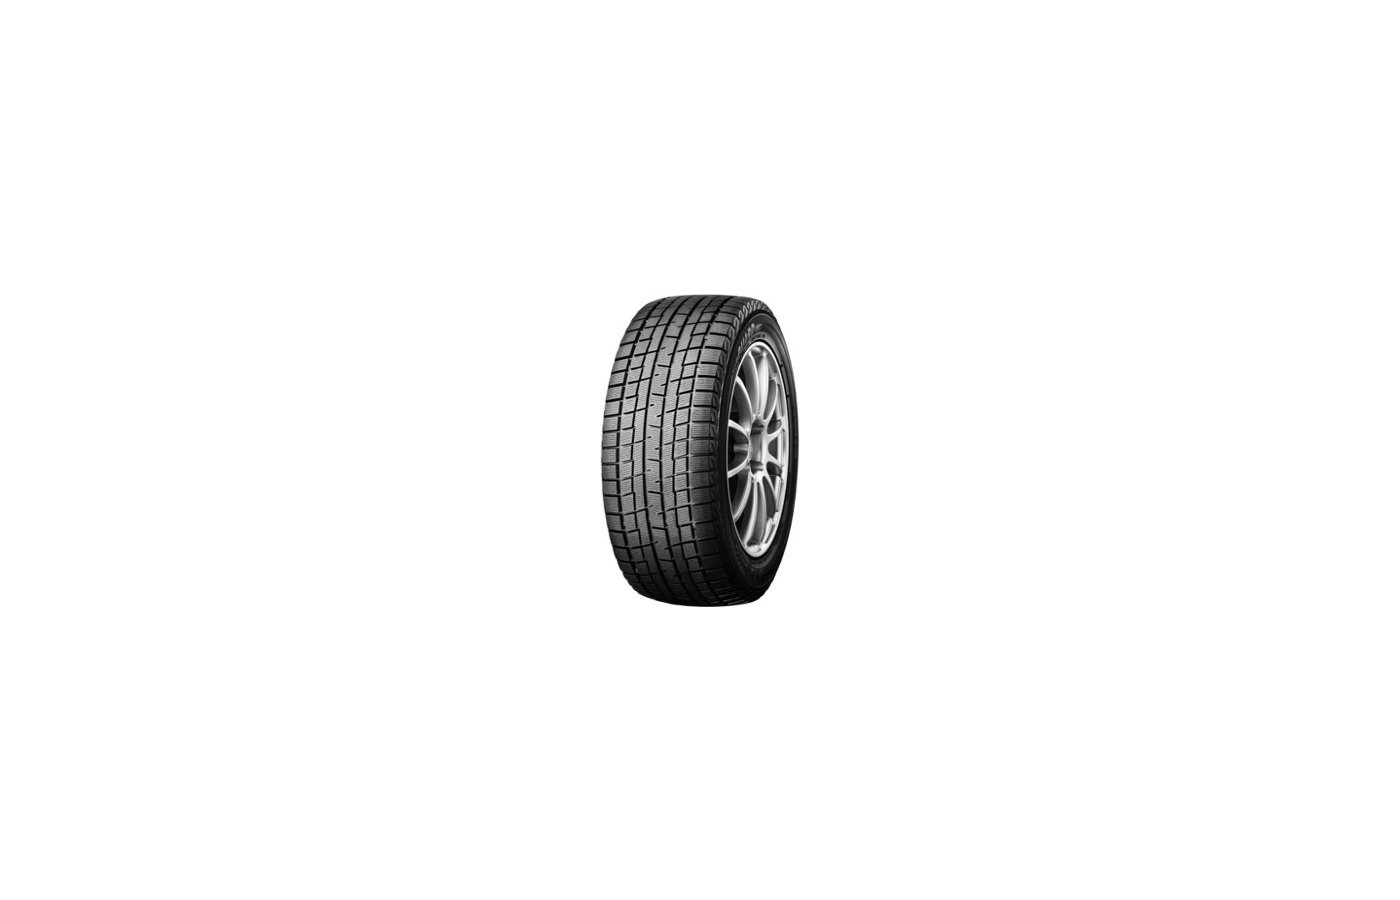 Шина Yokohama Ice Guard IG50 Plus 205/60 R16 TL 92Q